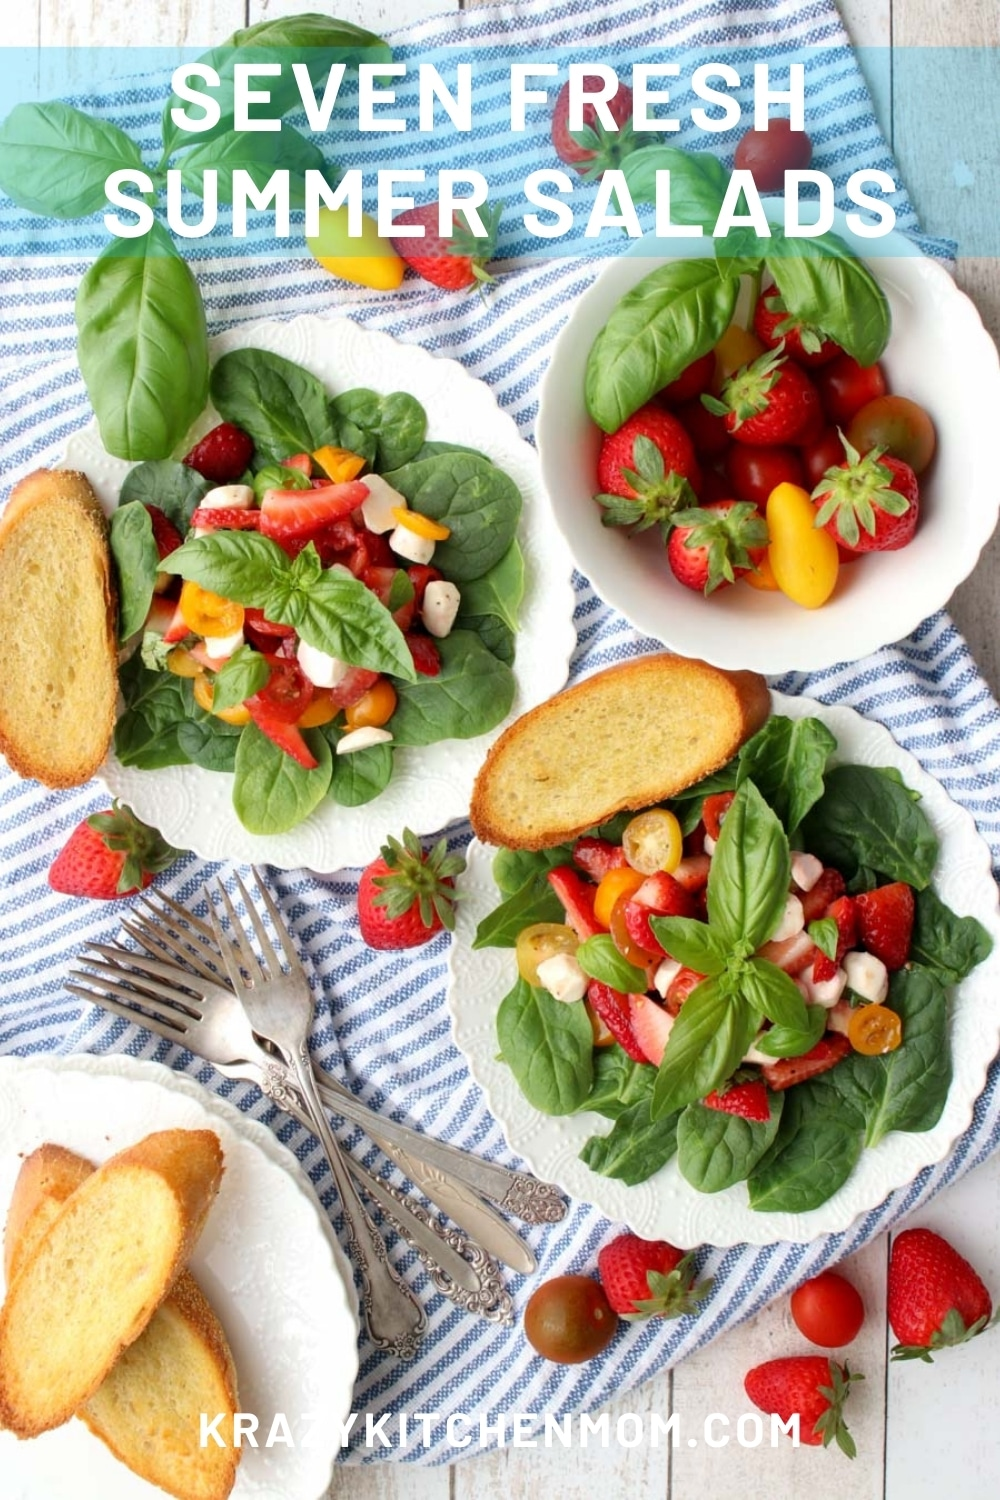 Seven big, bold, colorful, fresh summer salads to make for a casual family dinner, your next cookout, or a quiet afternoon lunch.  via @krazykitchenmom